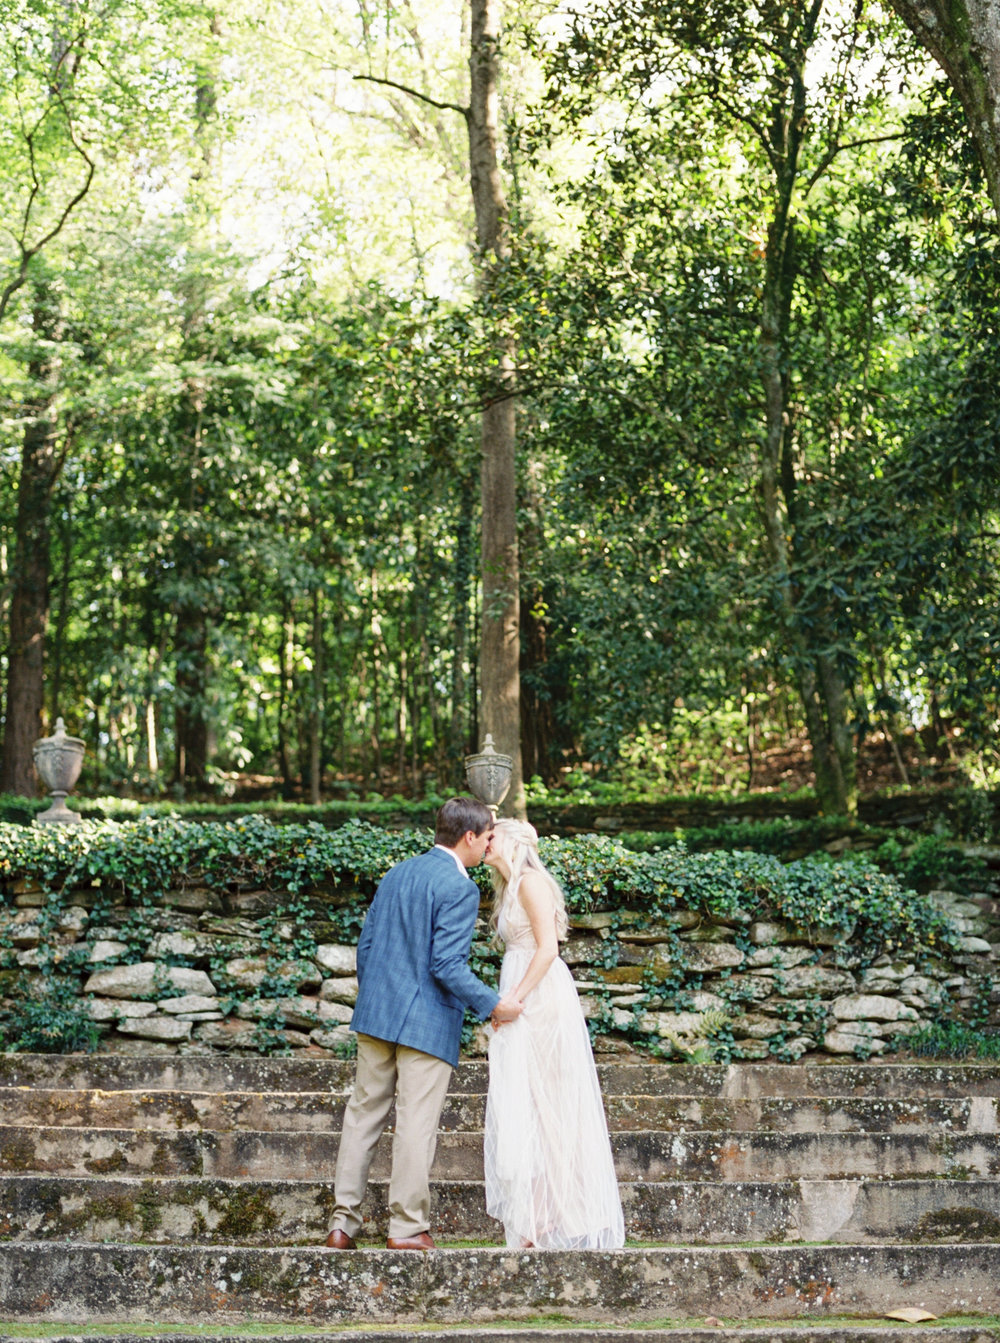 Erin_Johnny_Engagement_Dunaway_Gardens_Georgia_Film_Fallen_Photography-61.JPG